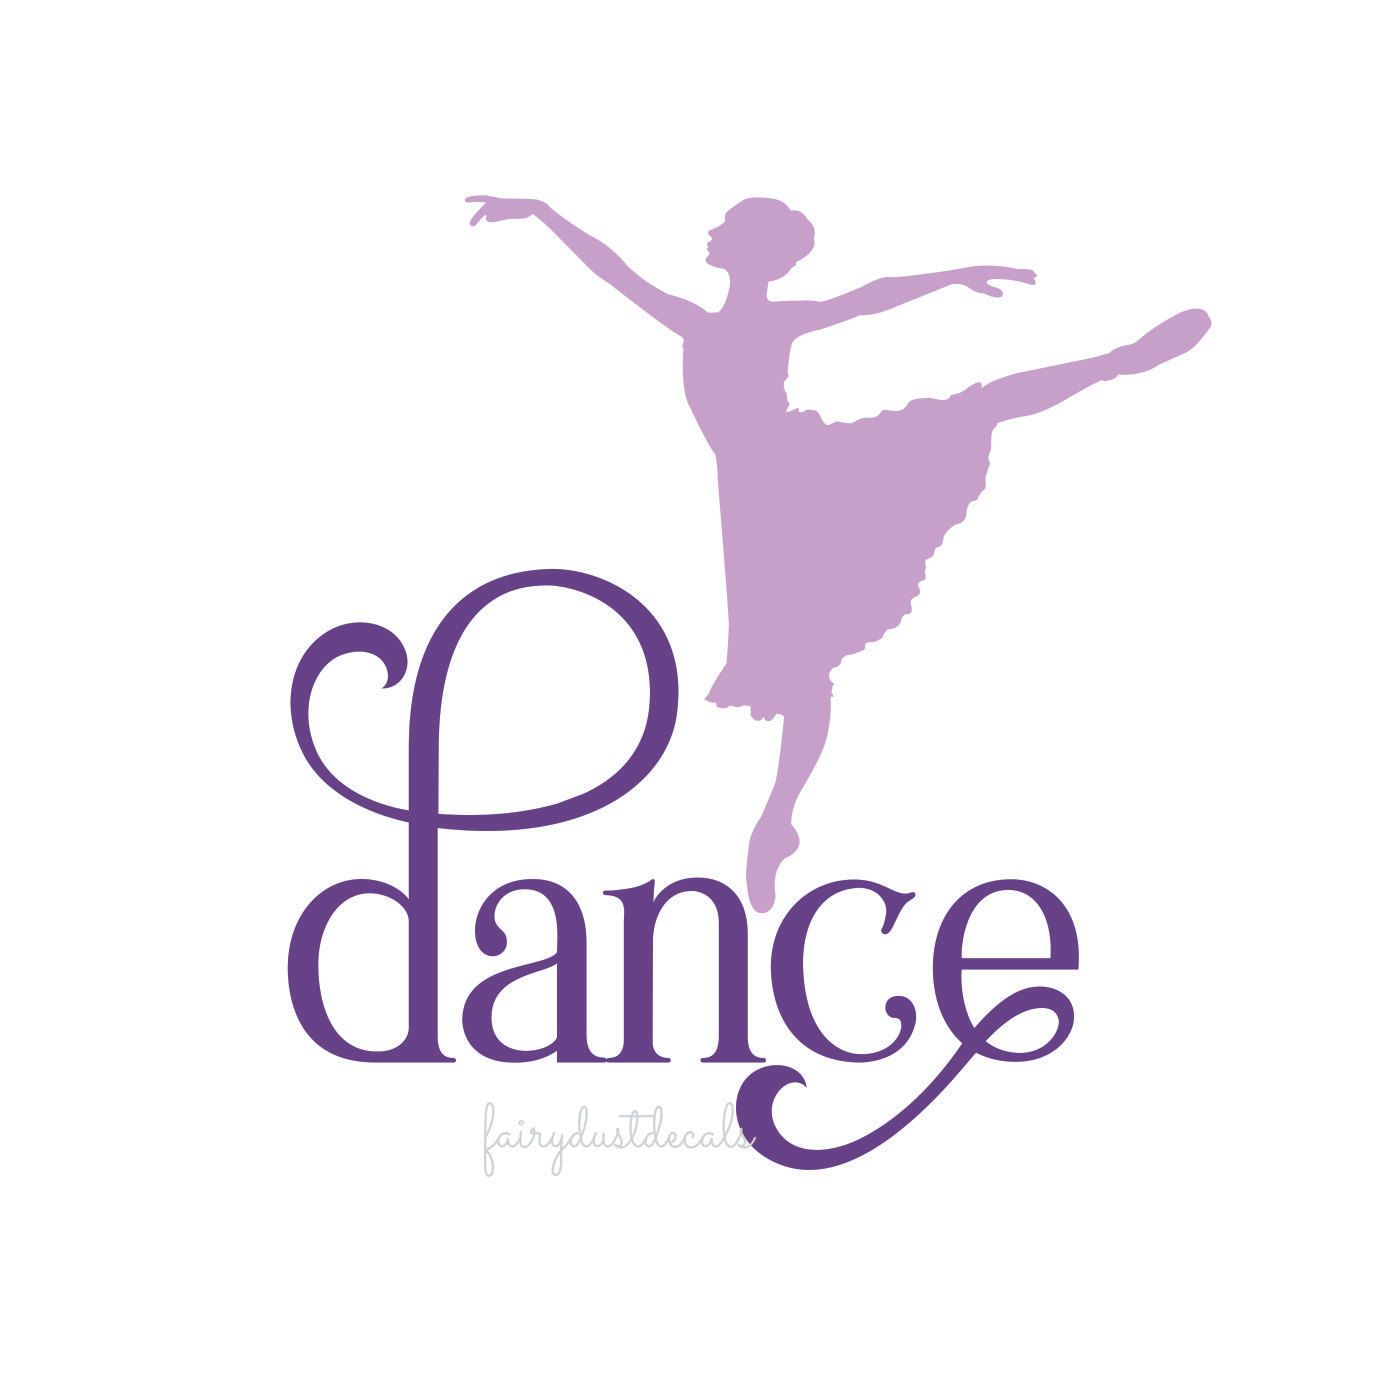 dance wall decal dance vinyl letters ballet dancer wall decal pretty ballet dancer wall decal the word dance in a classic style fancy letters